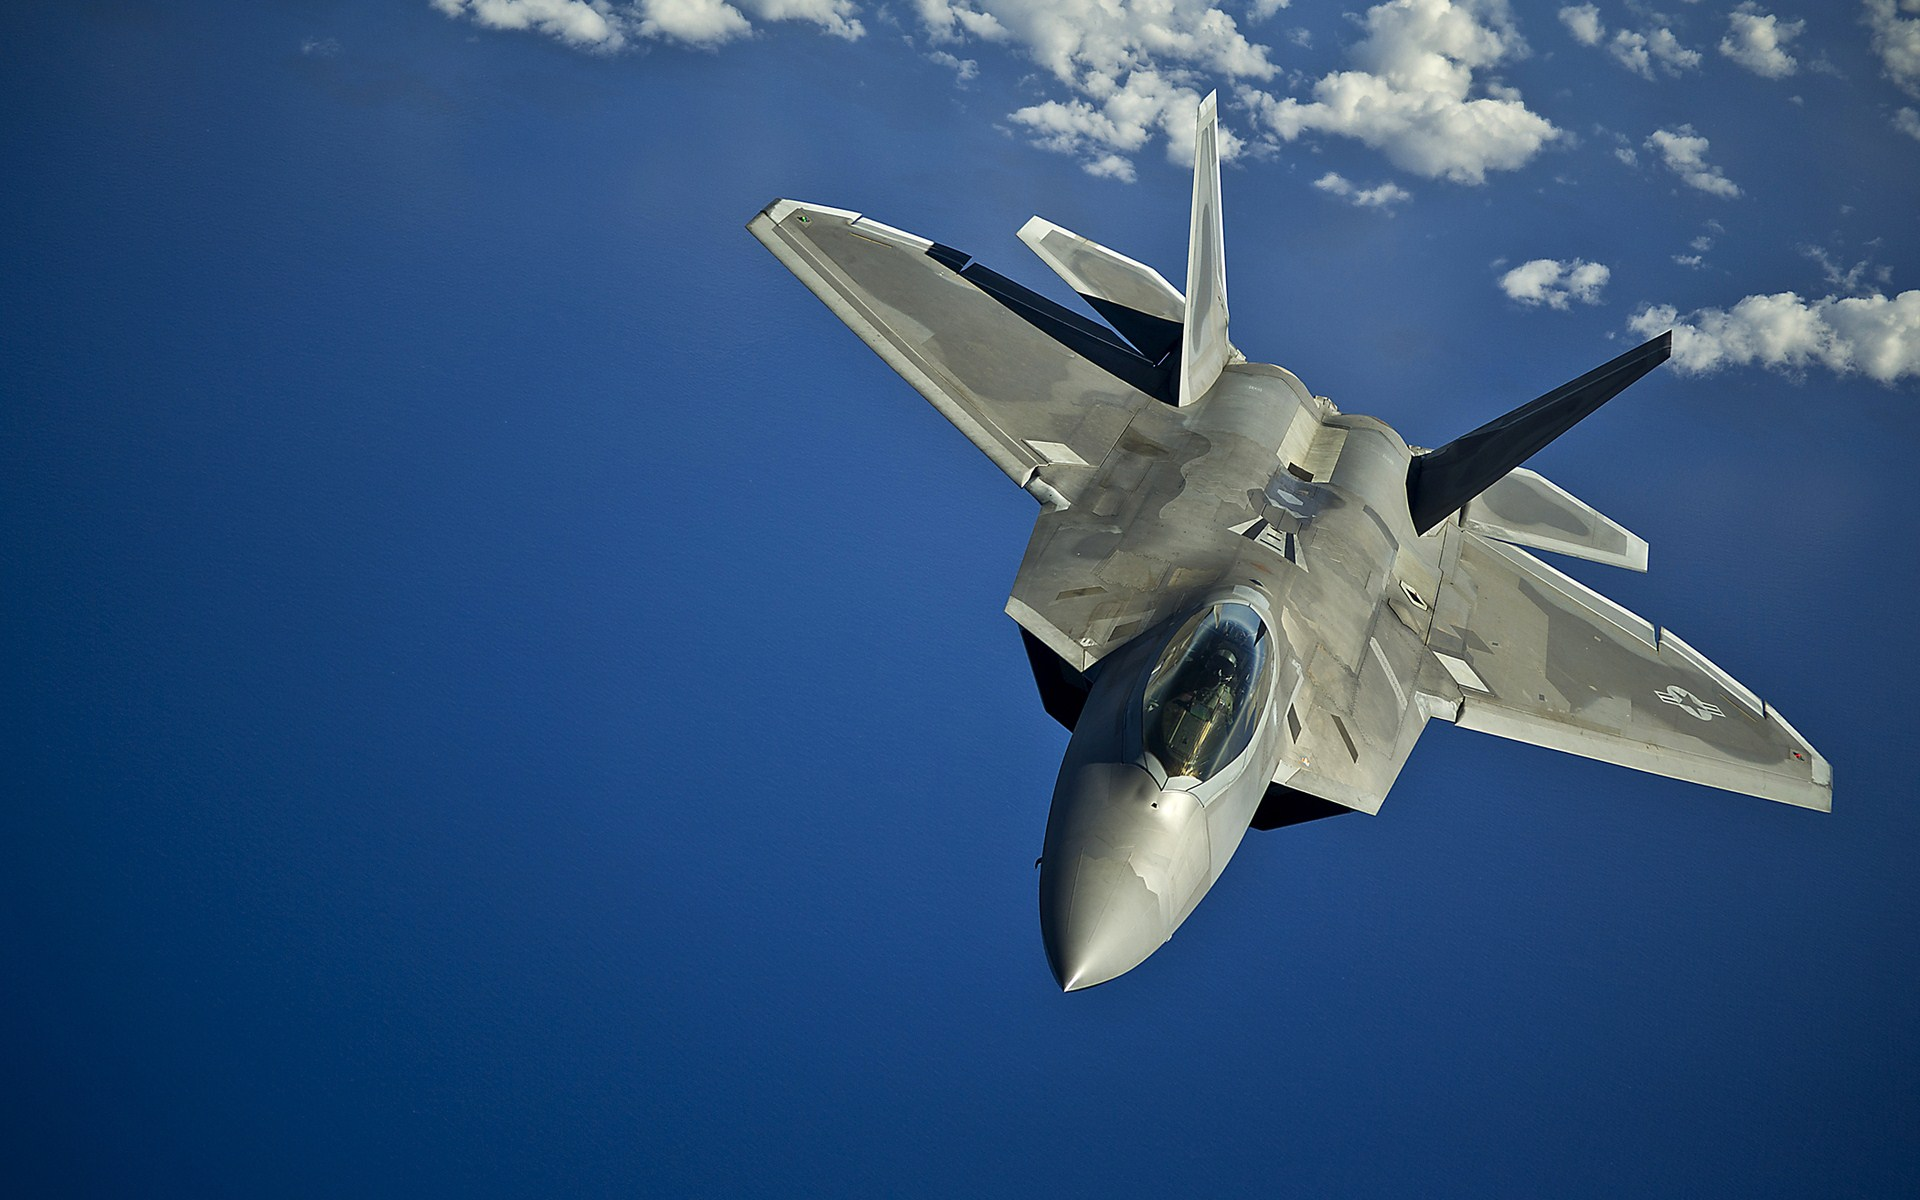 Free Download 19 F 22 Raptor Hd Wallpapers Imgcell 1920x1200 For